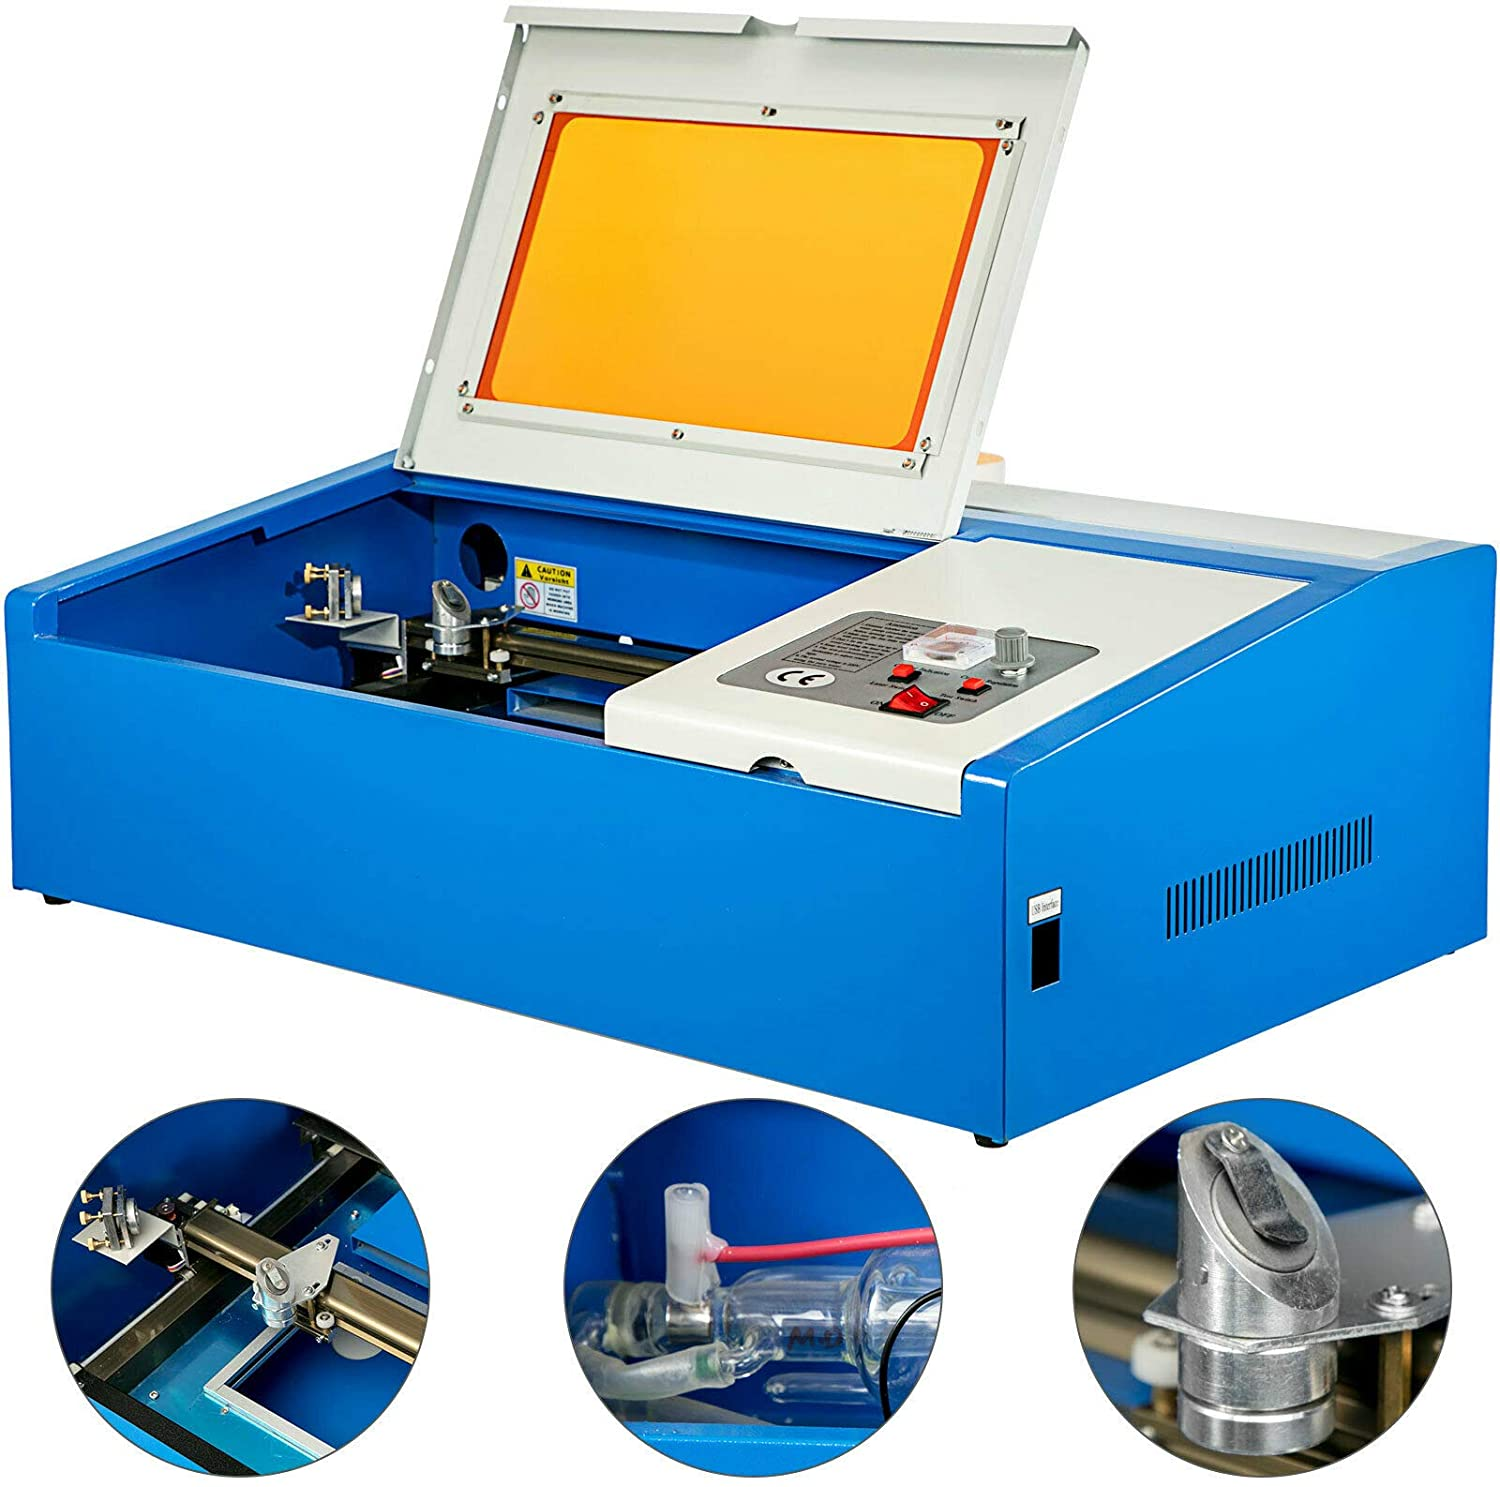 Laser Cutting Machine CO2 Laser Engraver Engraving Machine USB 3020 40W With Tube For Acrylic Wood Leather Various Materials